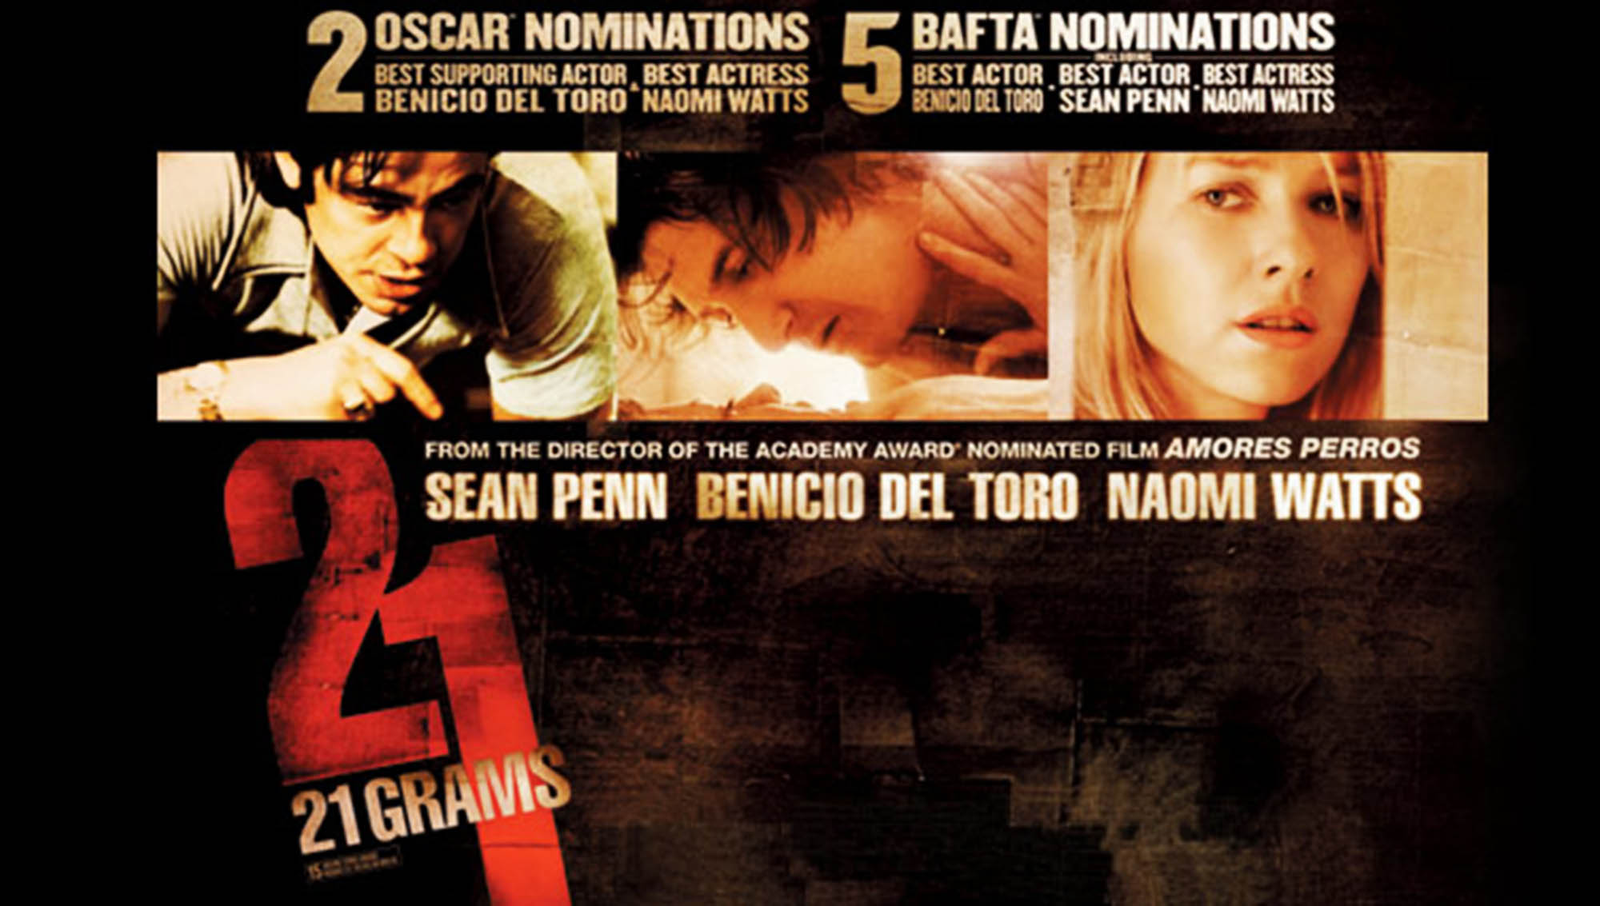 After Babel debuted to acclaim at the Cannes Film Festival, critics compared it to your previous films Amores Perros and 21 Grams.